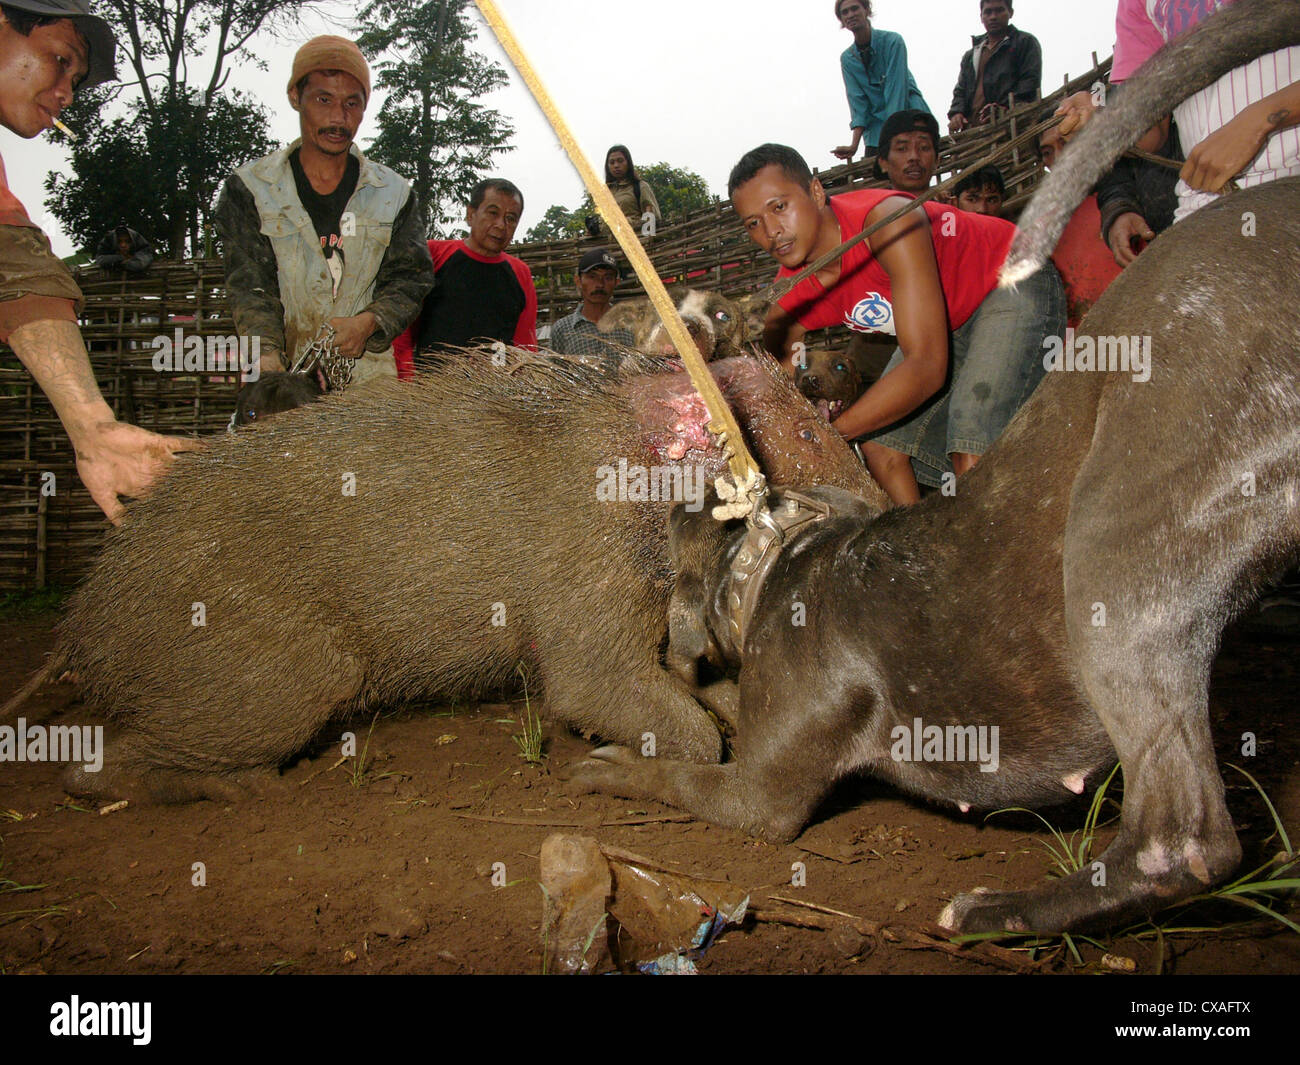 Members of a dog club set their attack-dog on a wild boar during a legal pig-baiting contest in West Java, Indonesia. - Stock Image